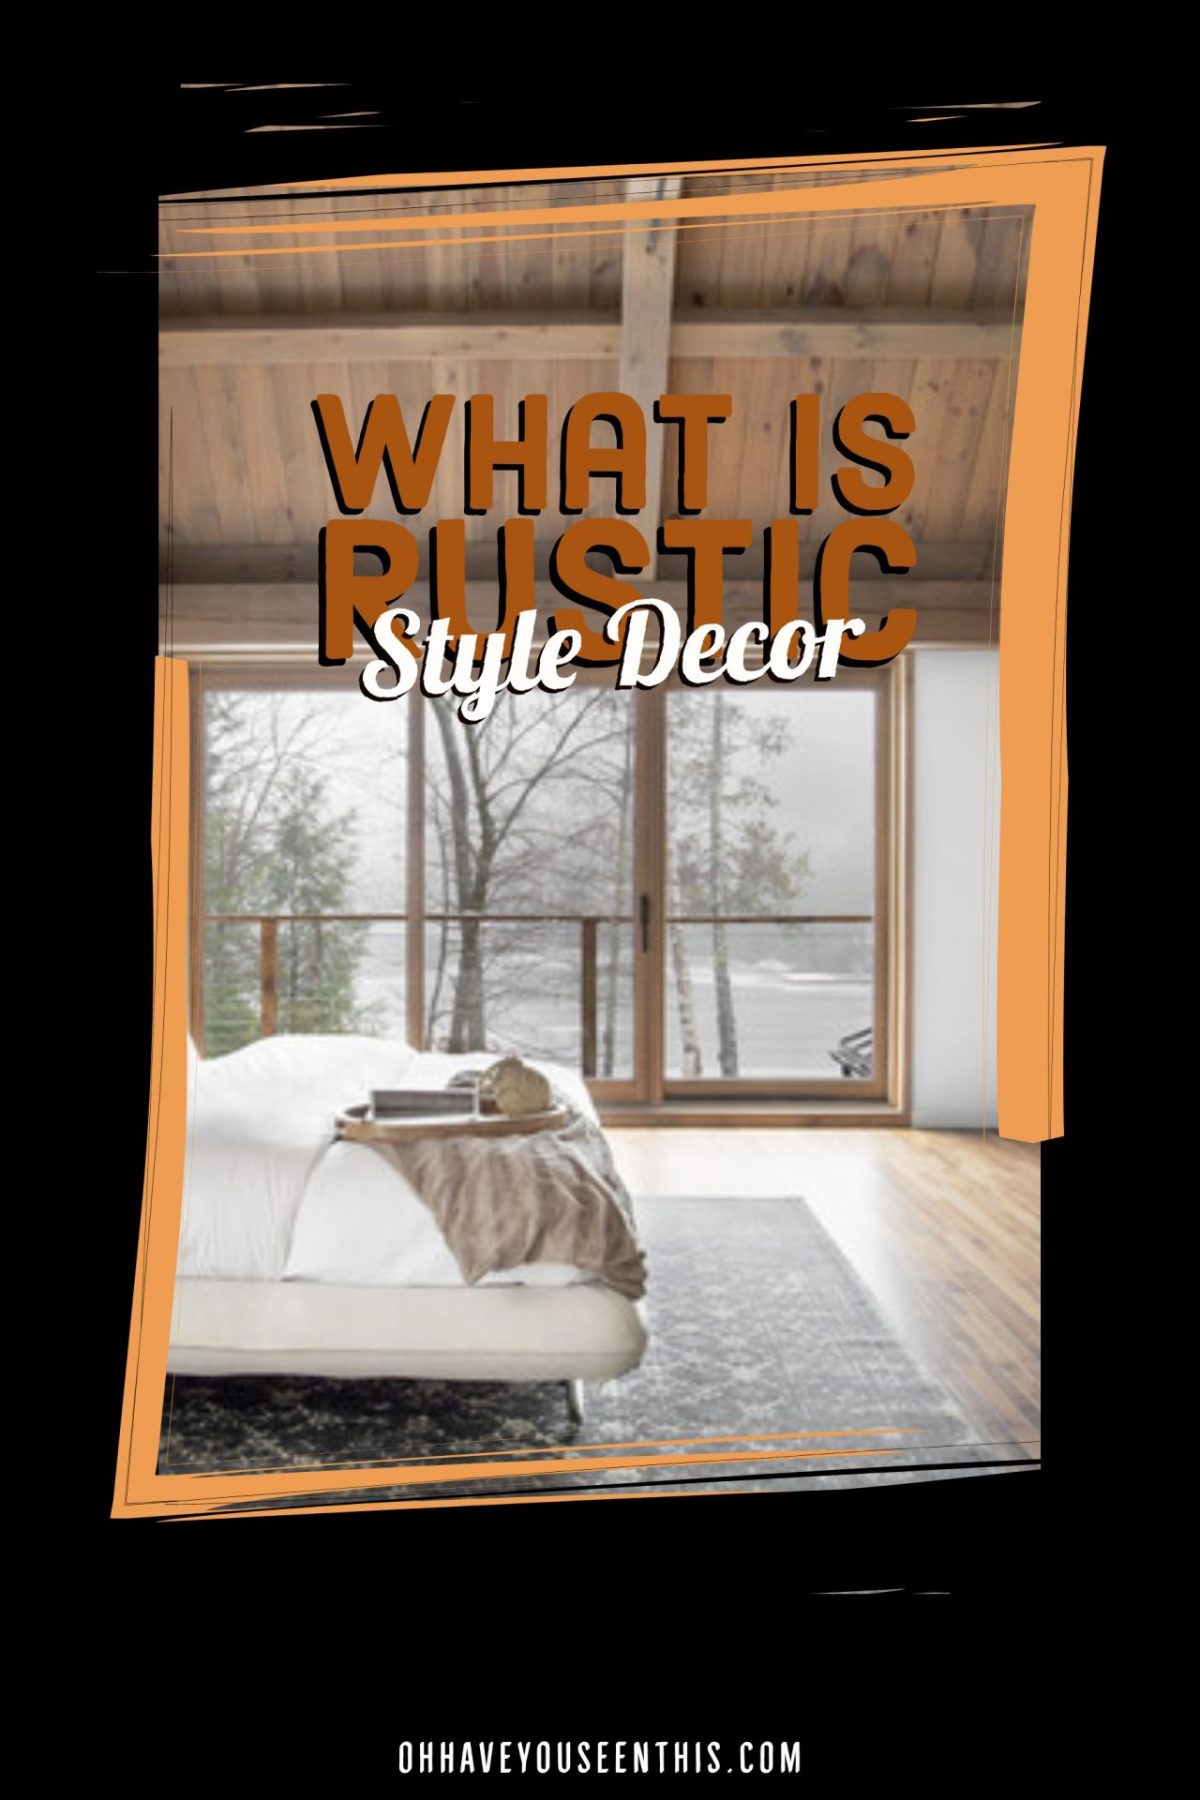 What is rustic style decor